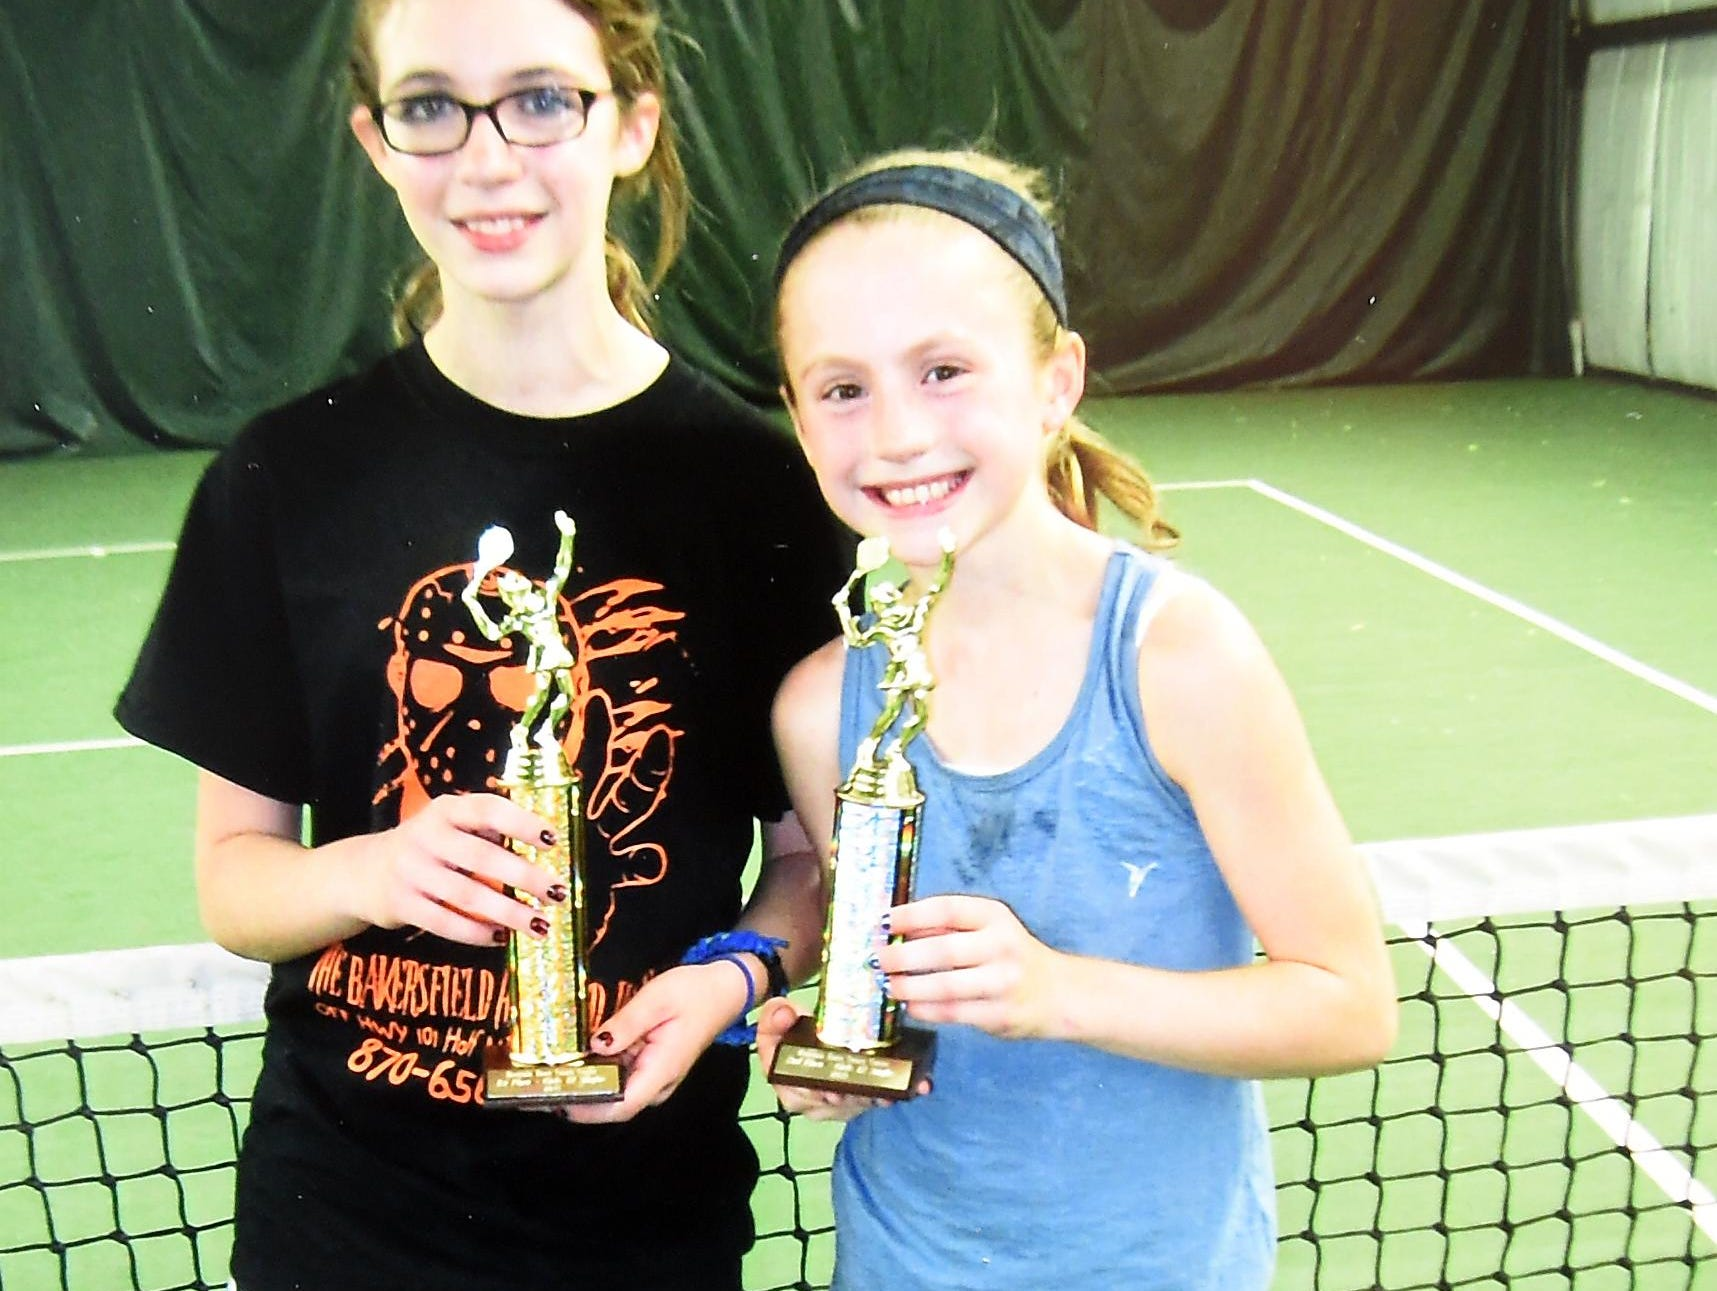 Micaela McLean, left, for the second straight year won the girls' 12-and-under division of the singles tournament held over the weekend at the Mountain Home Tennis Center. McLean defeated runner-up Riley Schmidt, right, 6-3, 6-1, in the finals. McLean defeated Sarah Godrey 6-1, 6-3 in one semifinal, and Schmidt defeated Macie Heide 2-6, 6-3, 11-9 in the other semifinal.